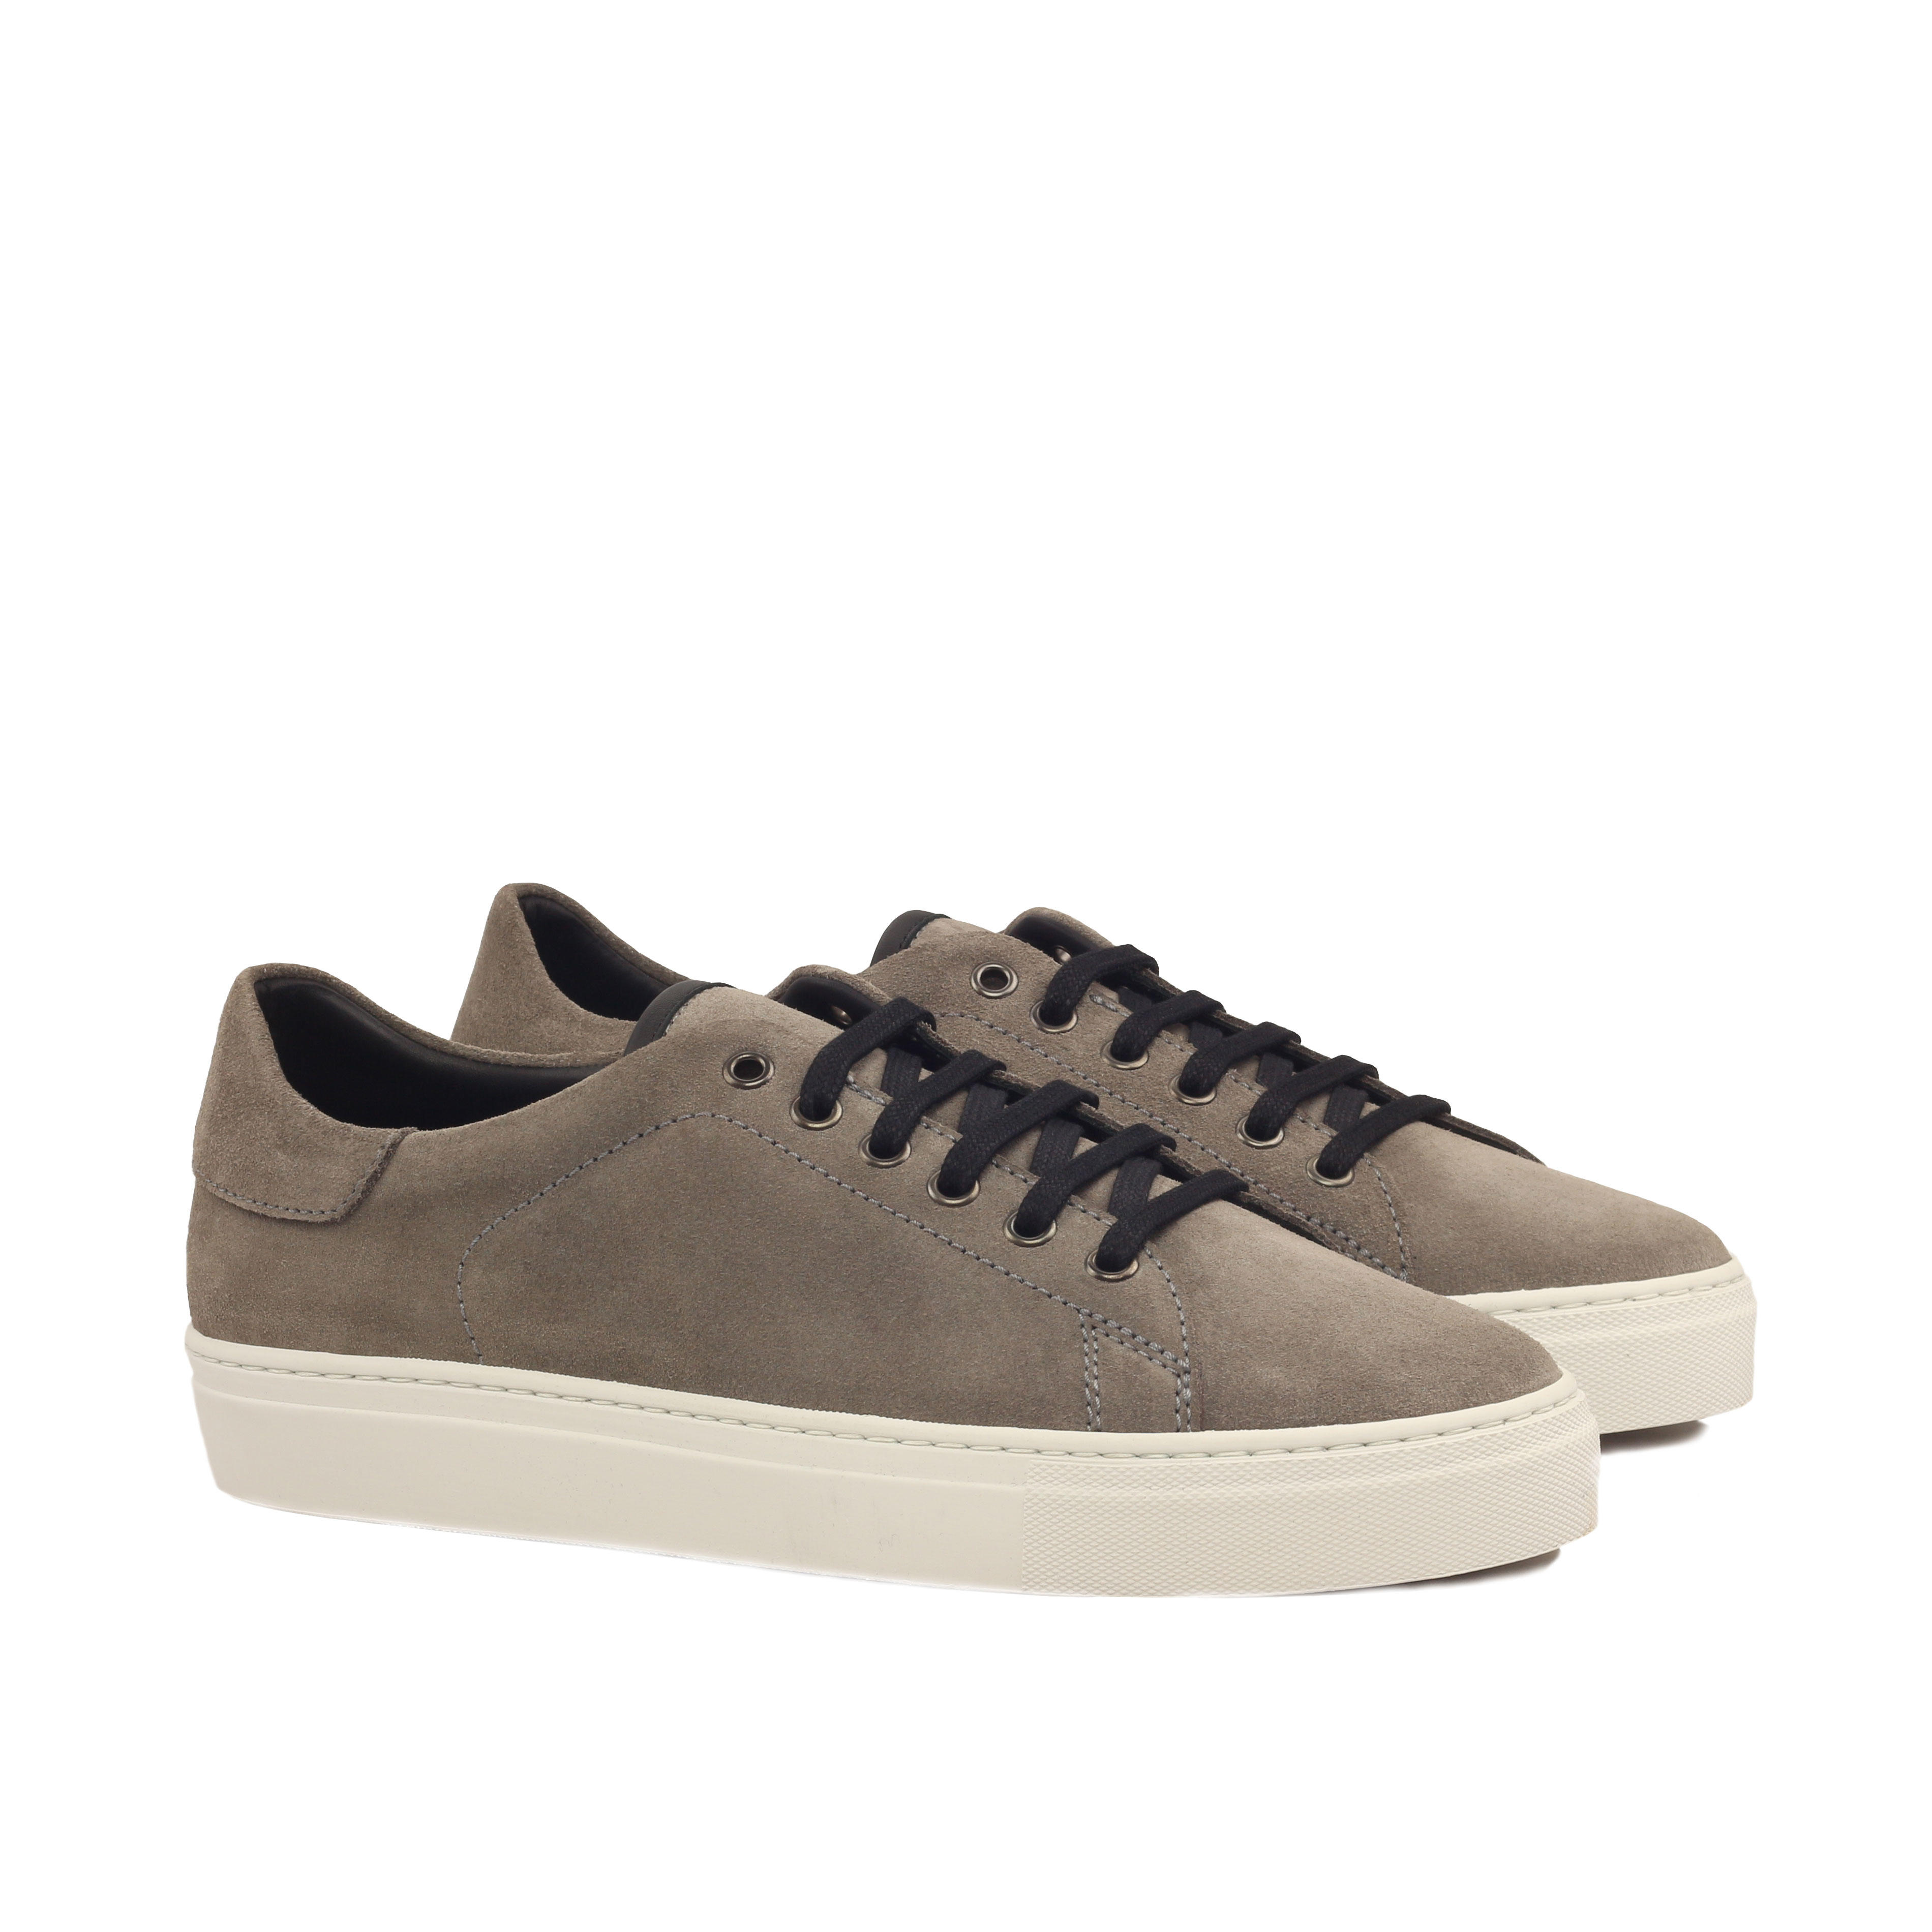 MANOR OF LONDON 'The Perry' Grey Suede Tennis Trainer Luxury Custom Initials Monogrammed Front Side View